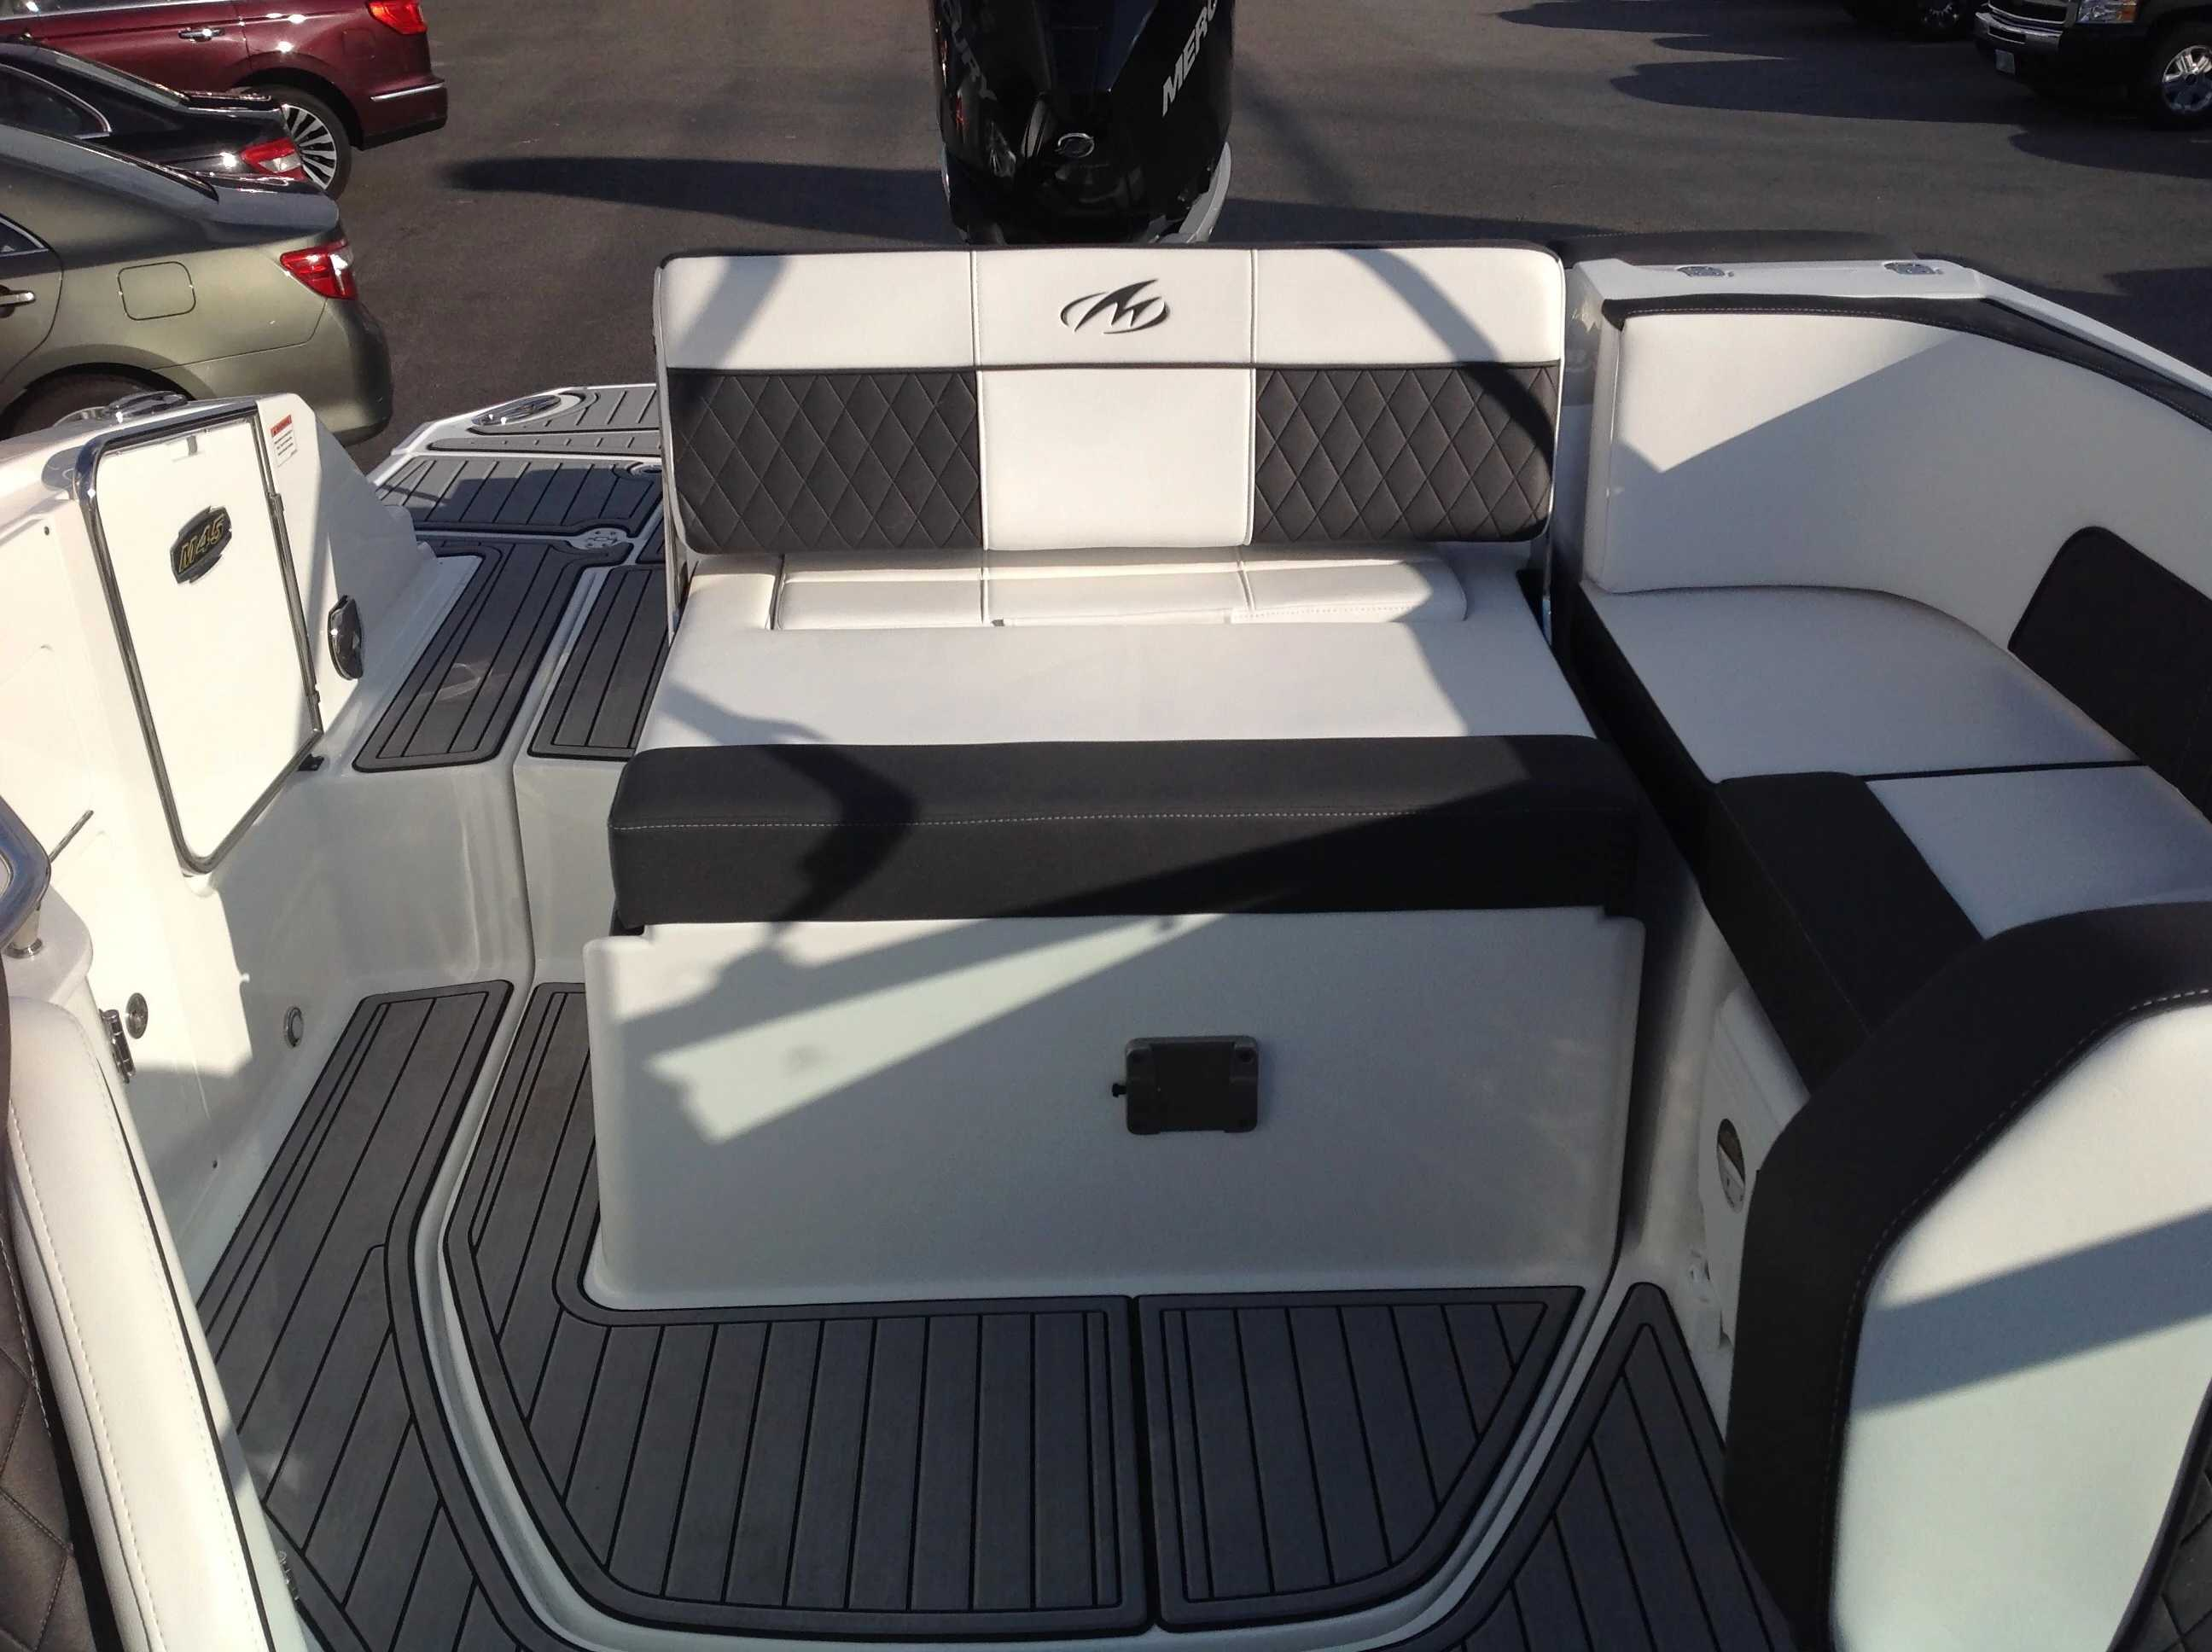 2021 Monterey boat for sale, model of the boat is M45 & Image # 10 of 21